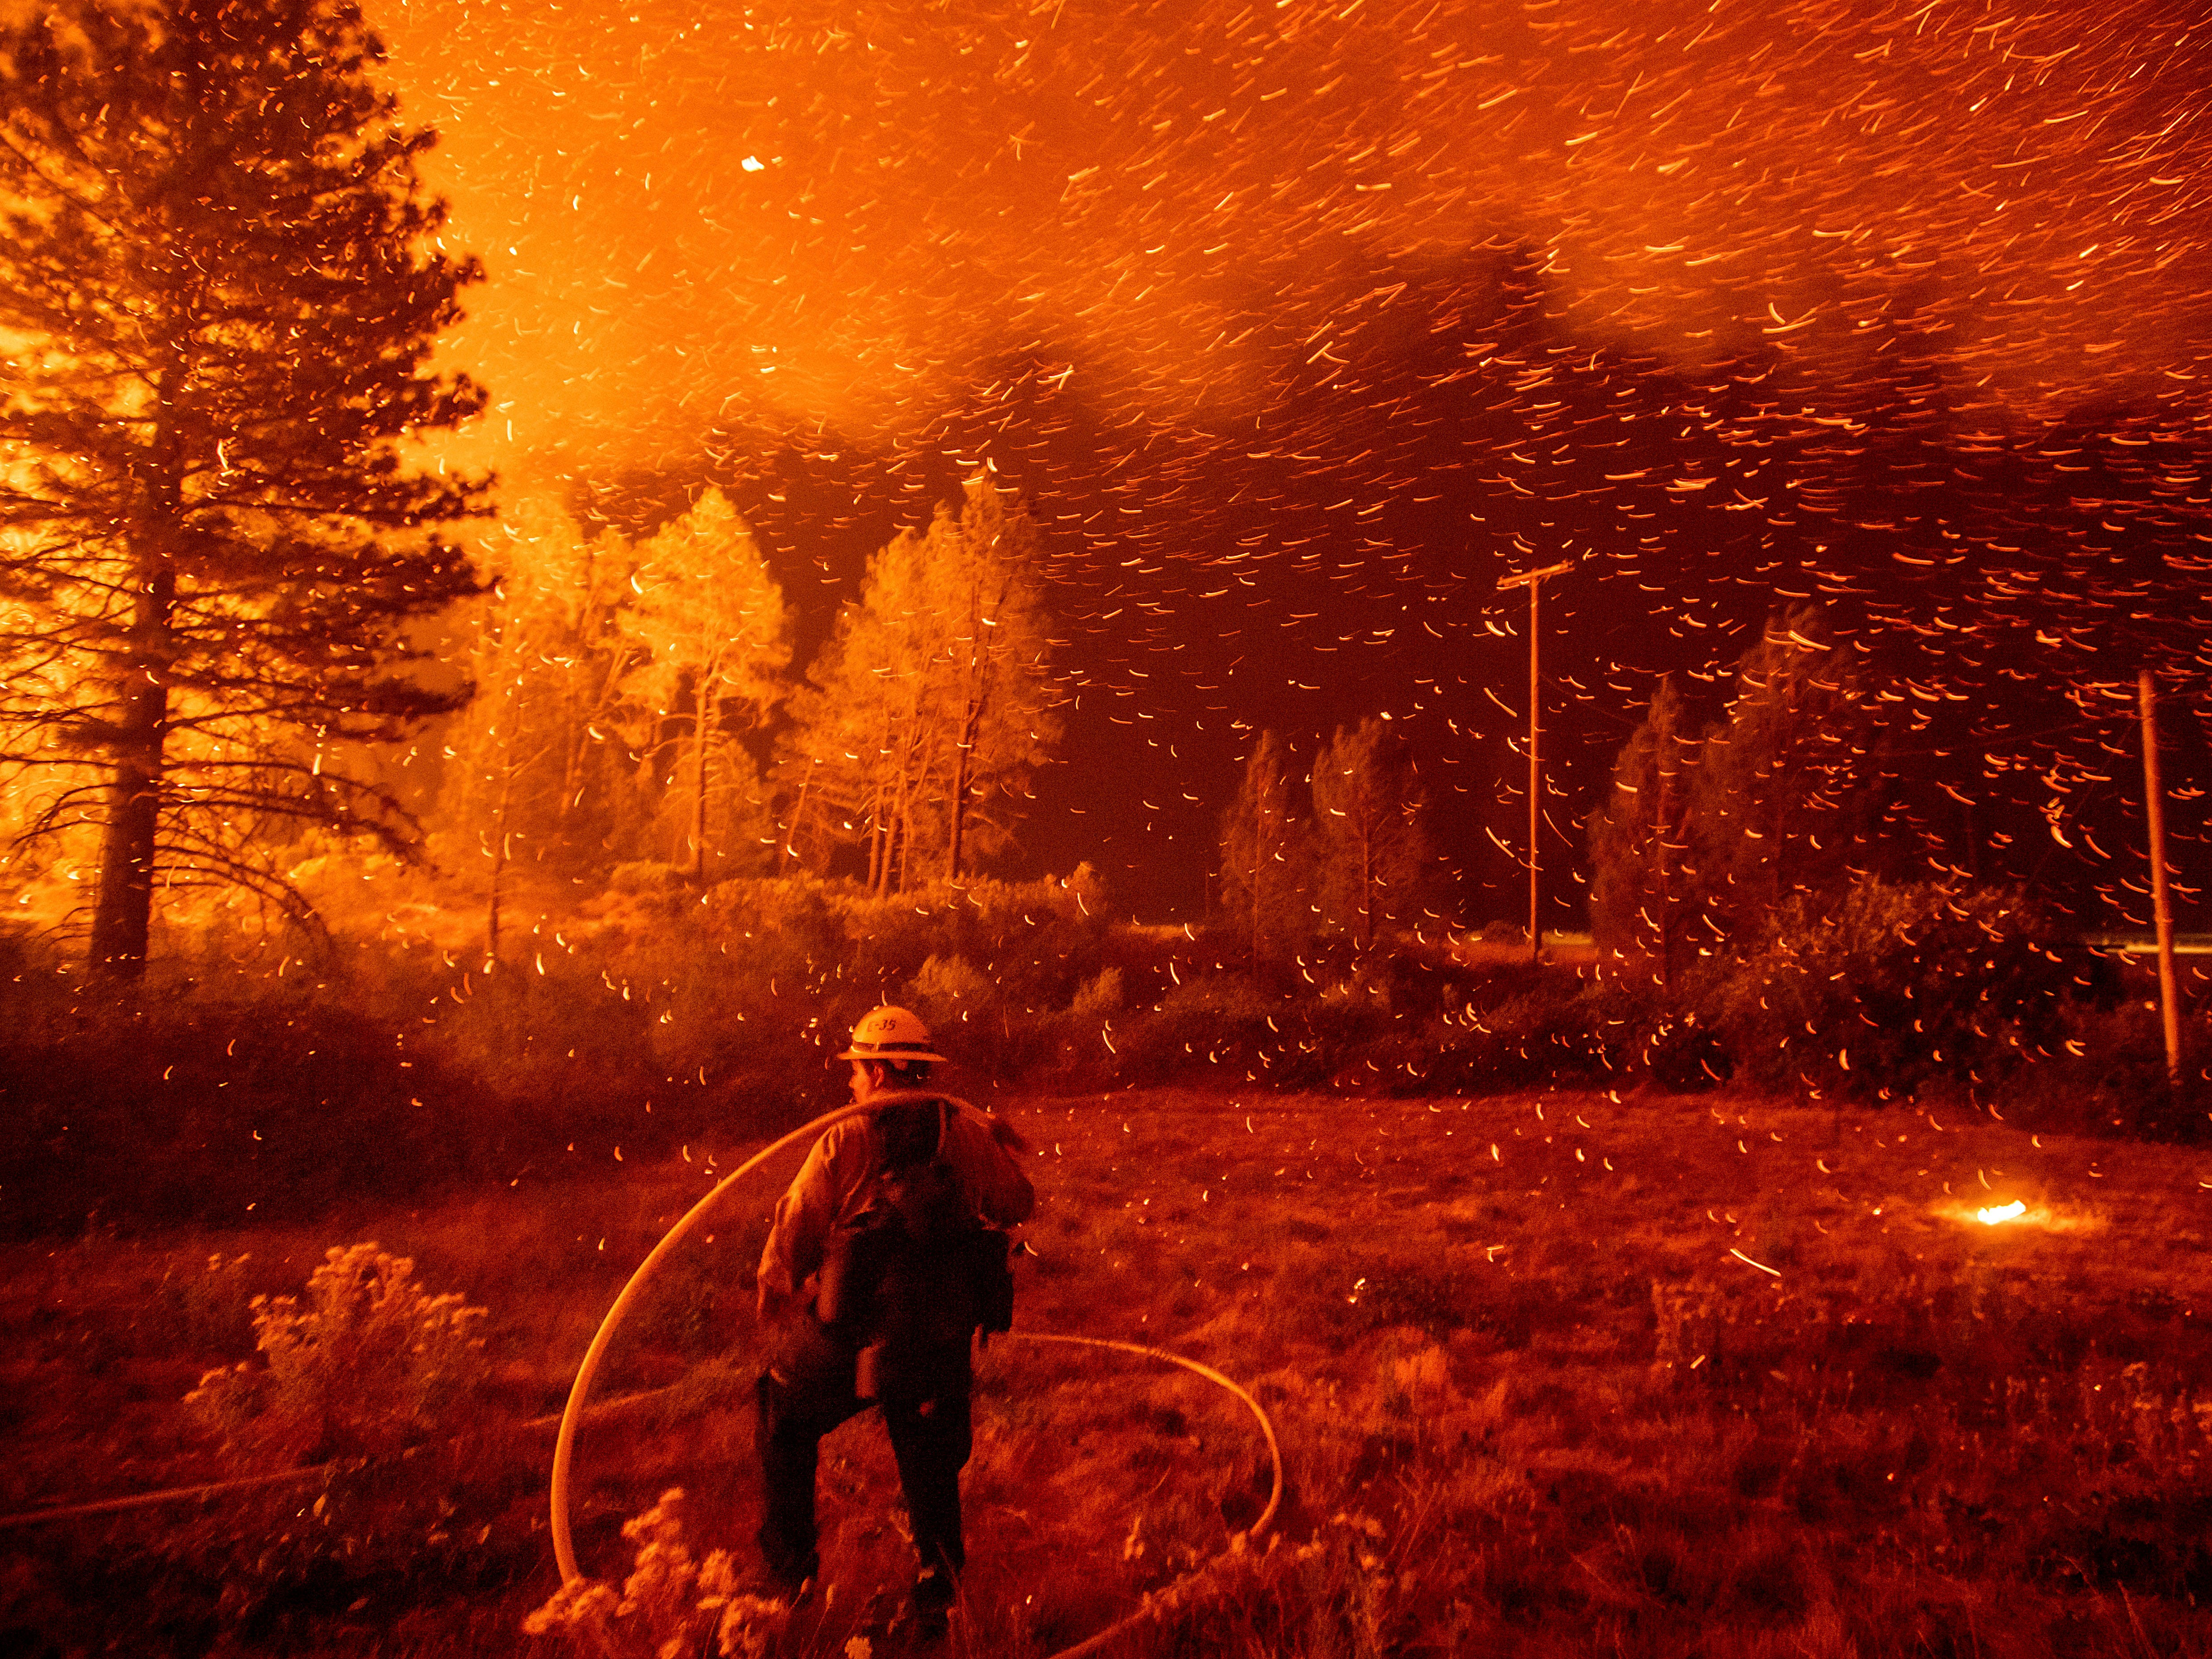 Embers fly above a firefighter as he works to control a backfire as the Delta Fire burns in the Shasta-Trinity National Forest, Calif., on Thursday, Sept. 6, 2018. The blaze had tripled in size overnight.